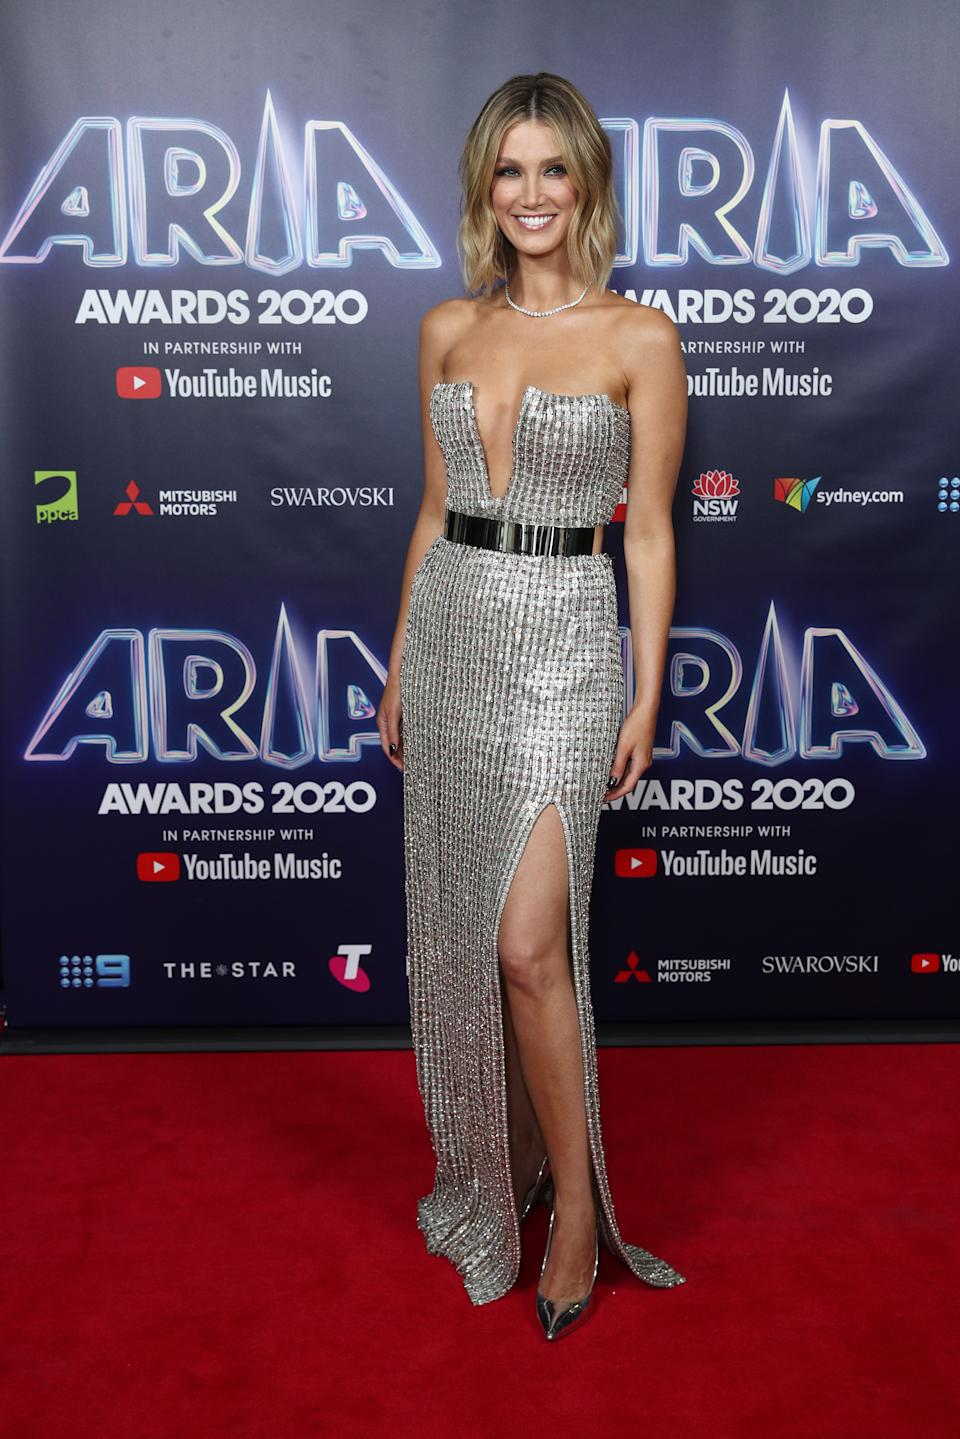 Delta Goodrem wears a sparkling silver strapless gown on the red carpet at the 2020 ARIA Awards at The Star on November 24, 2020 in Sydney, Australia.